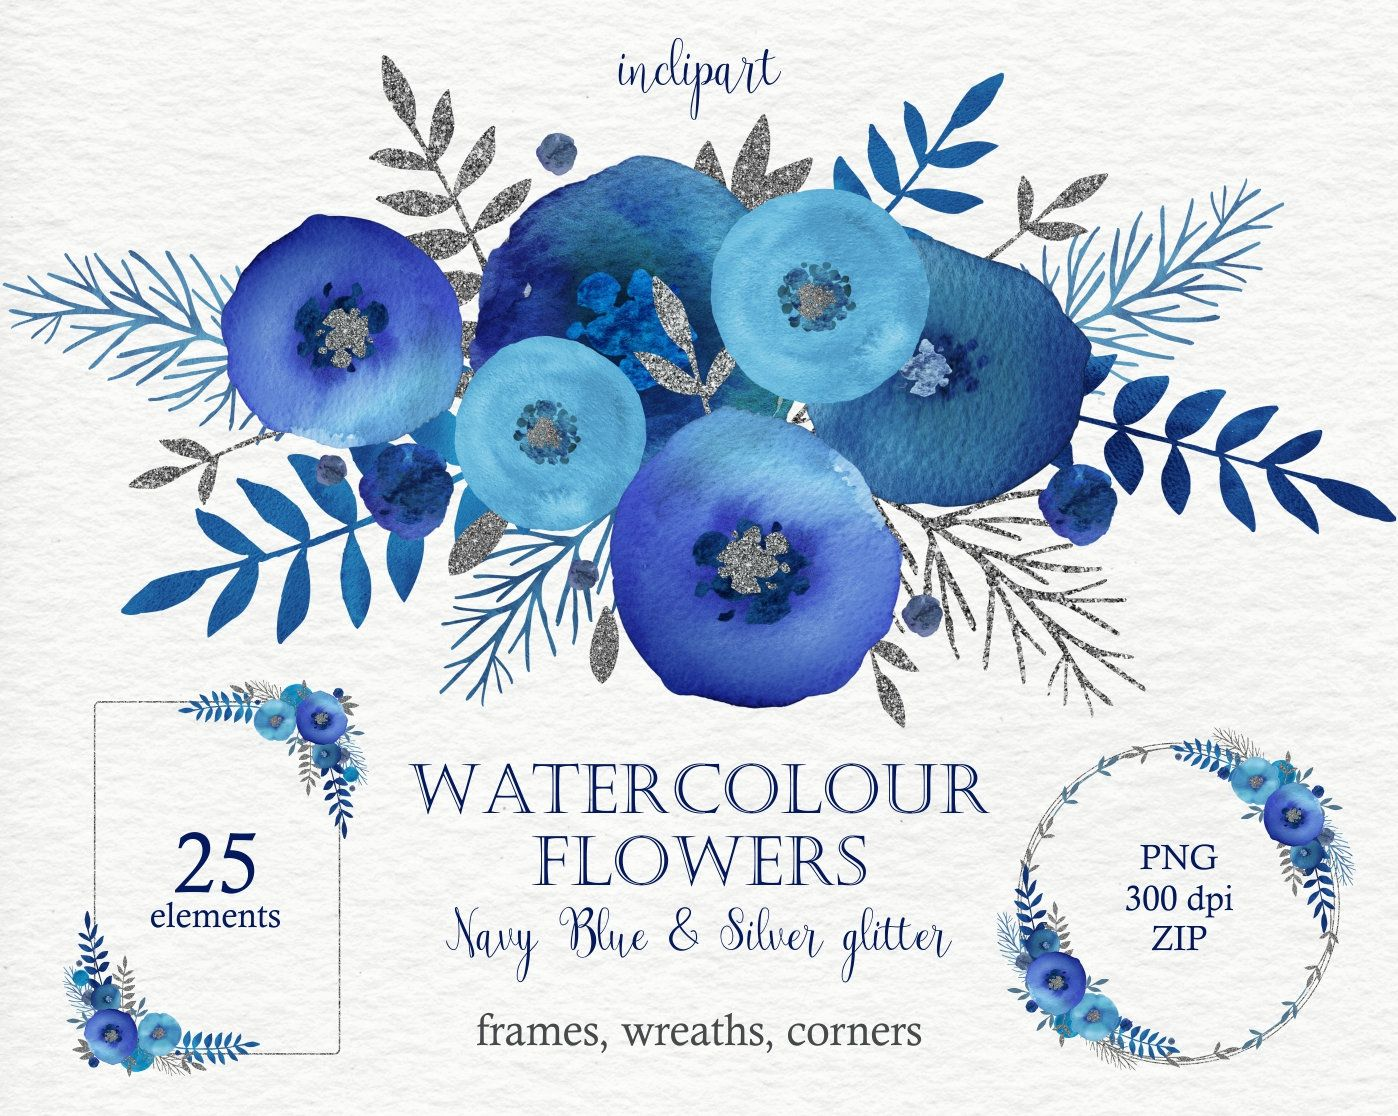 Watercolor navy blue flowers clipart floral wreaths corners floral wreath watercolor pink watercolor watercolor background navy blue flowers glitter flowers izmirmasajfo